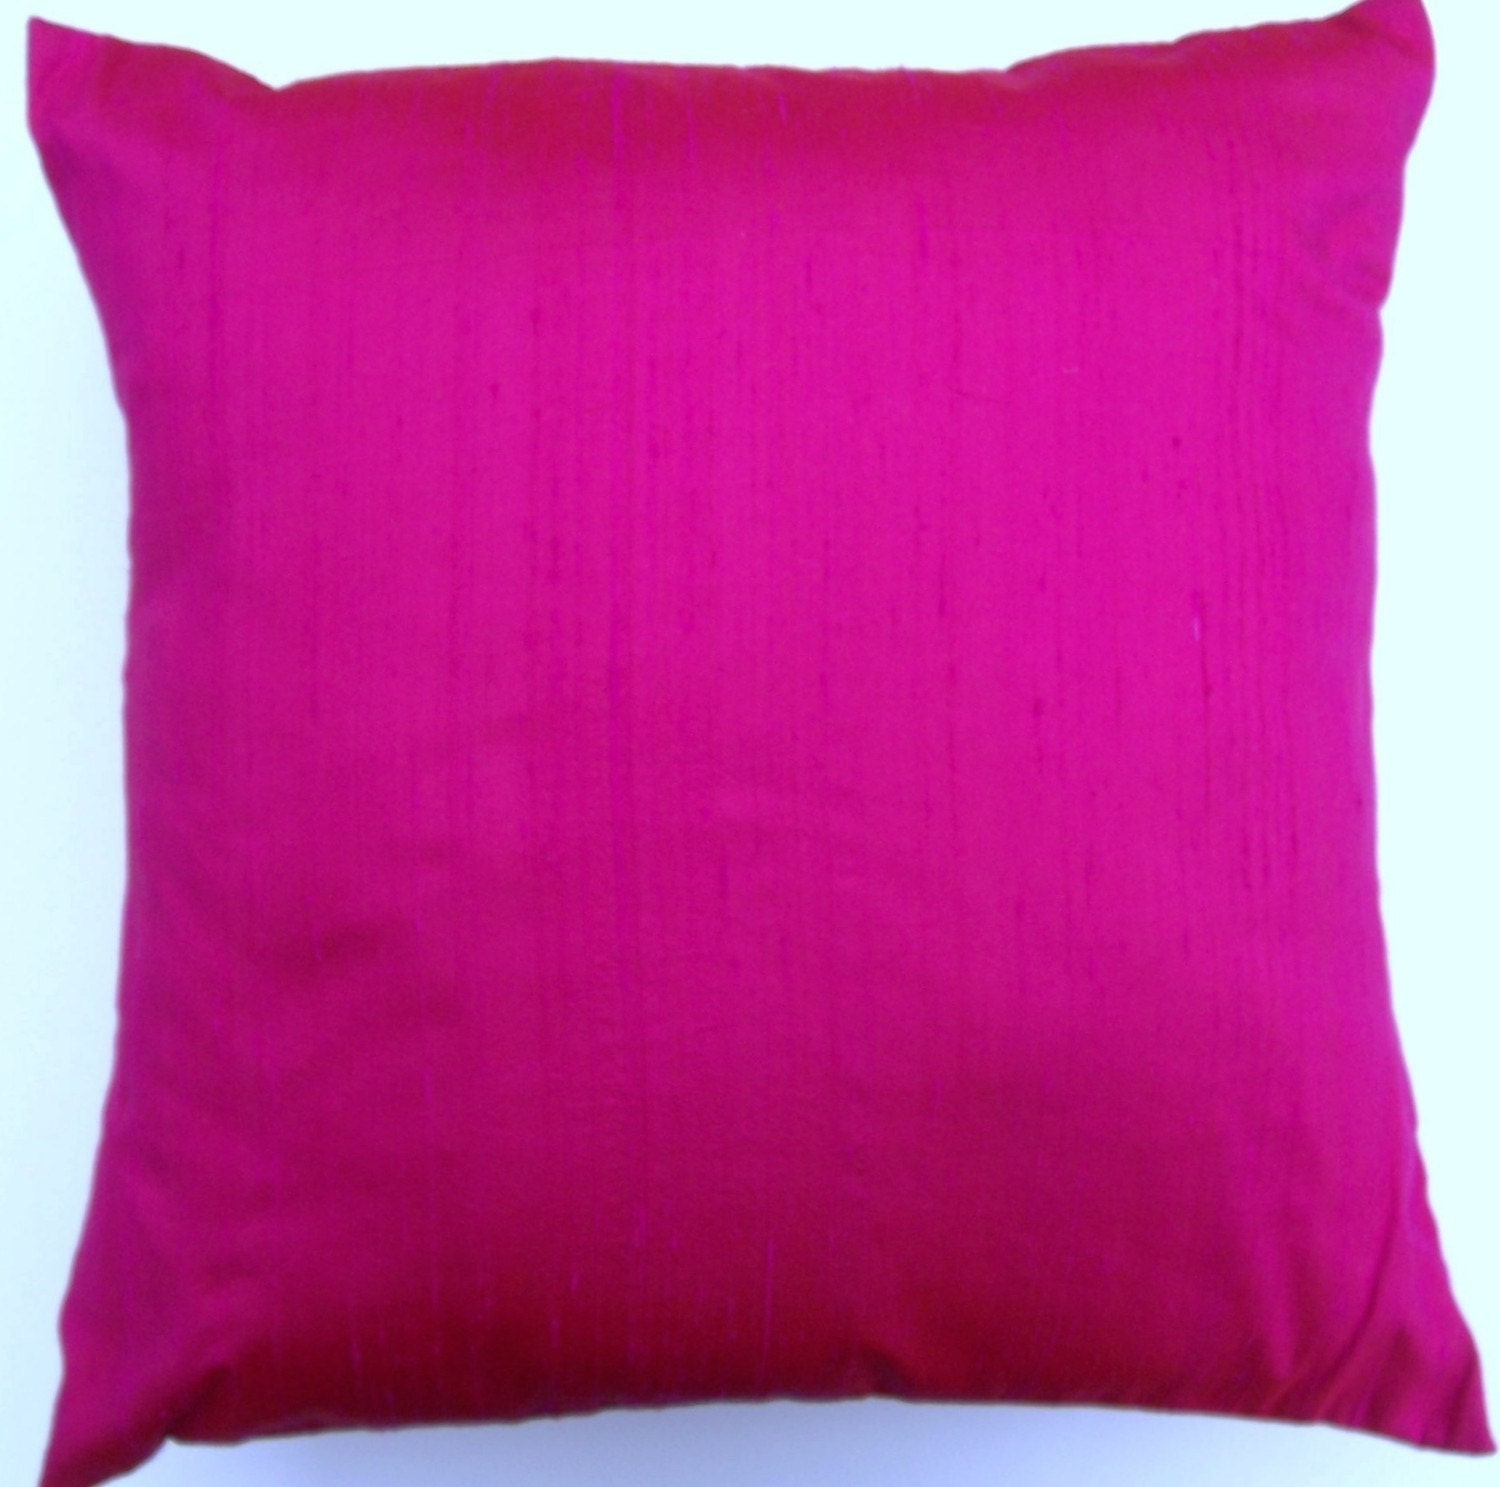 hot pink pillow cover hot pink throw pillow cushion cover. Black Bedroom Furniture Sets. Home Design Ideas